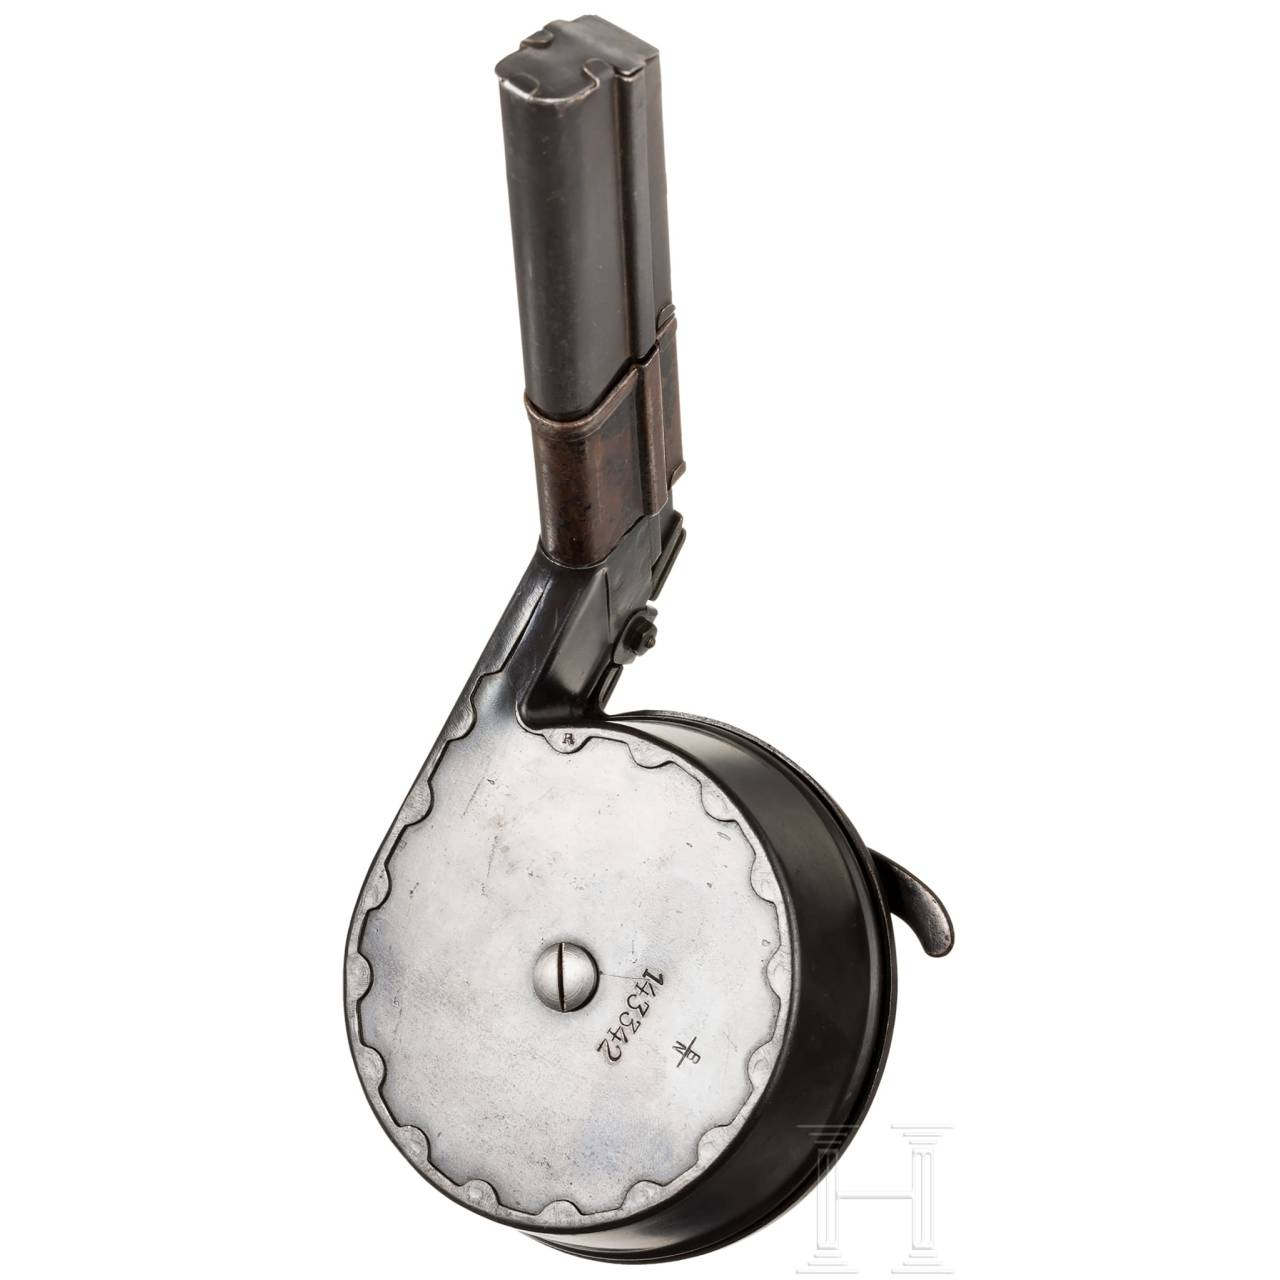 A snail drum magazine (T.M. 08 new version), with MP loader and dust cover, Gebr. Bing